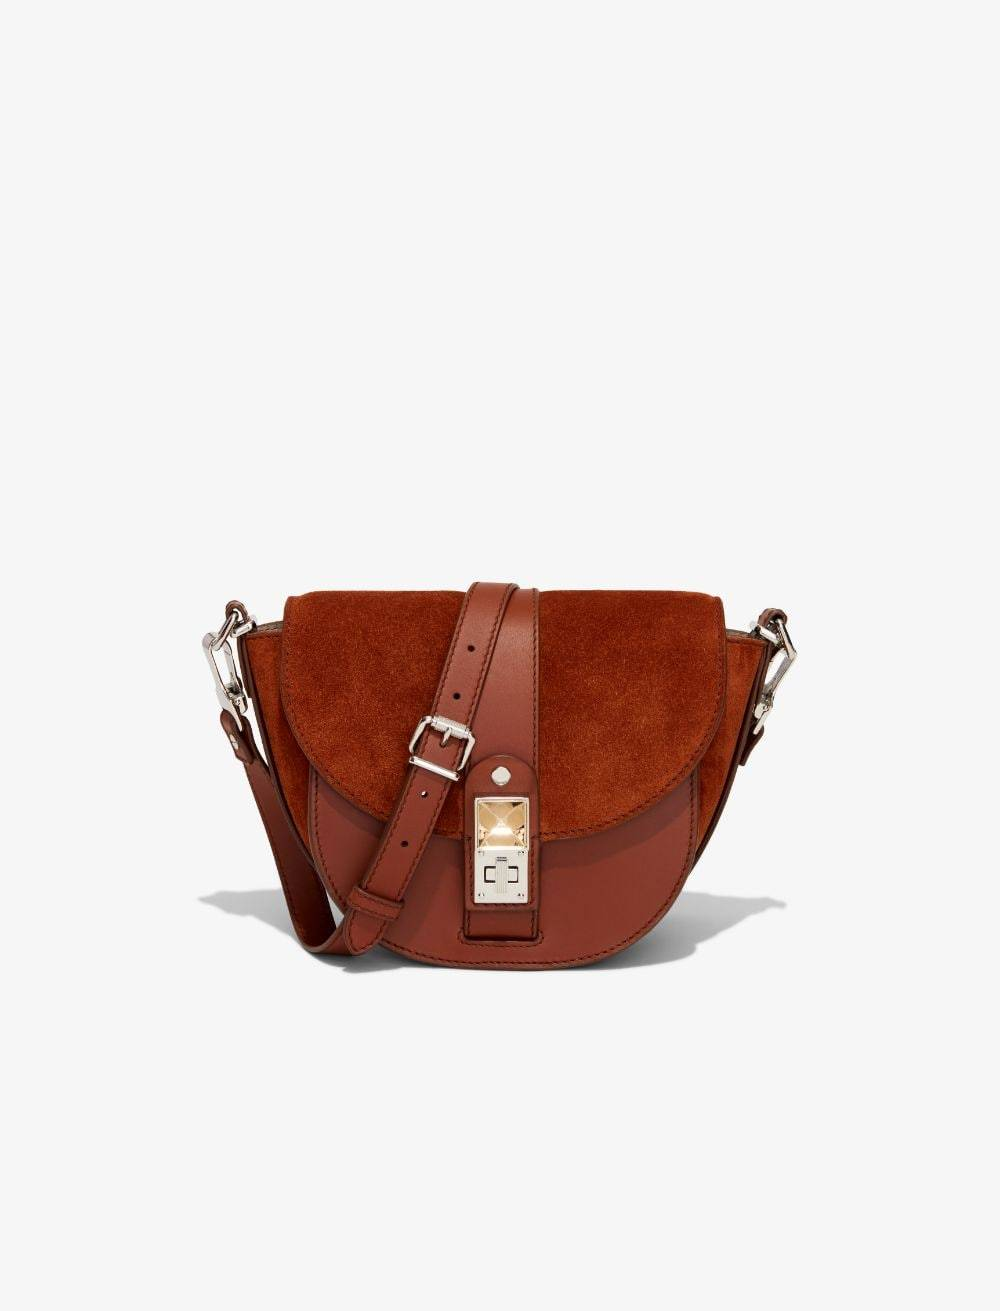 Proenza Schouler PS11 Small Saddle Bag chocolate/brown One Size